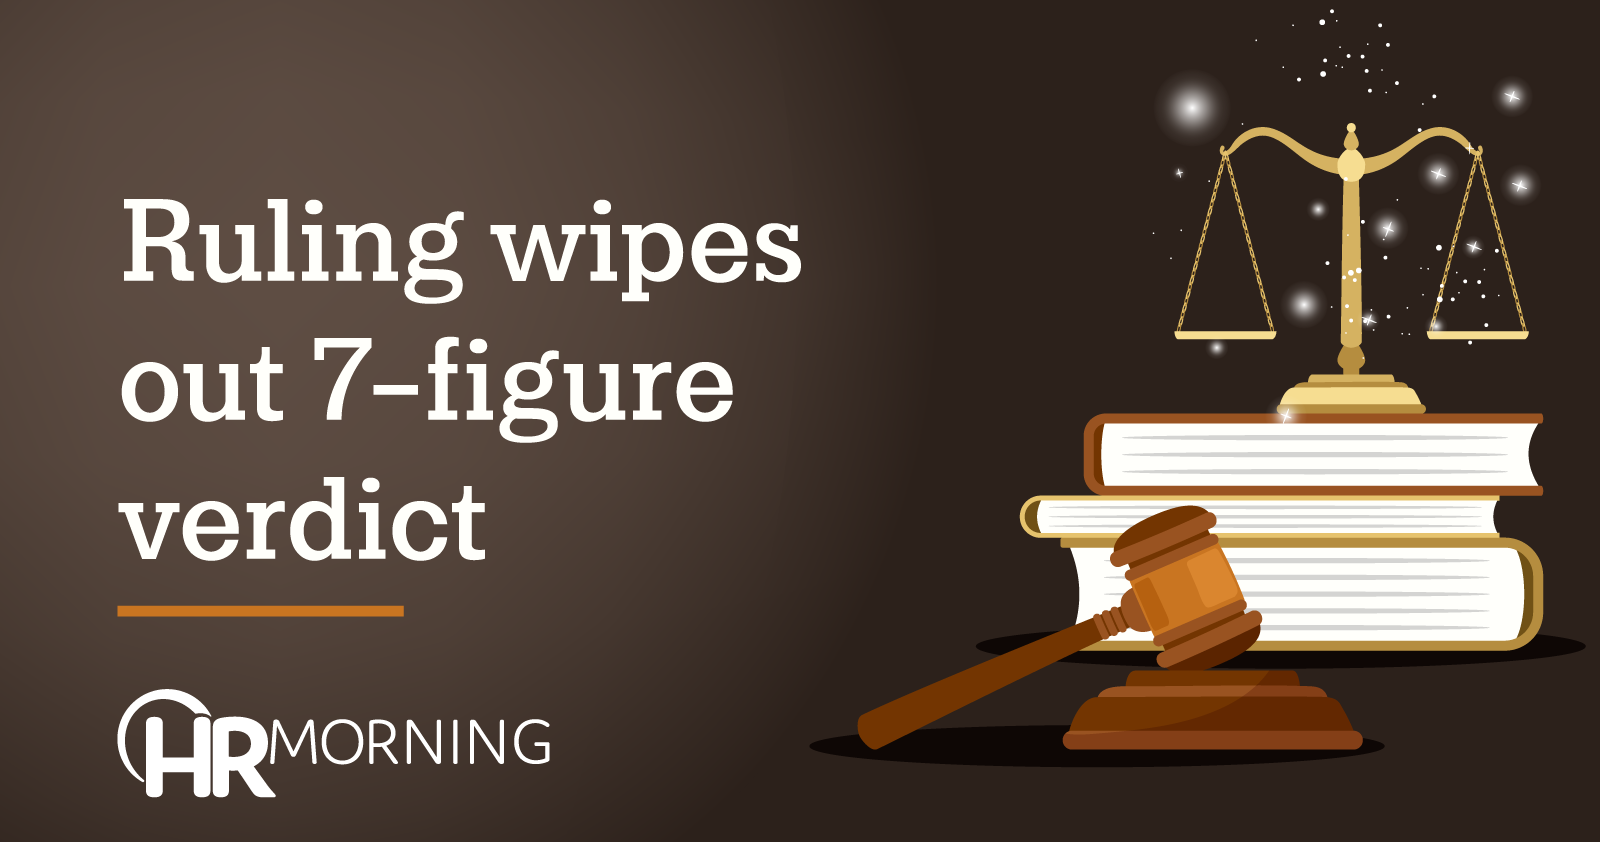 Ruling Wipes Out 7-figure Verdict